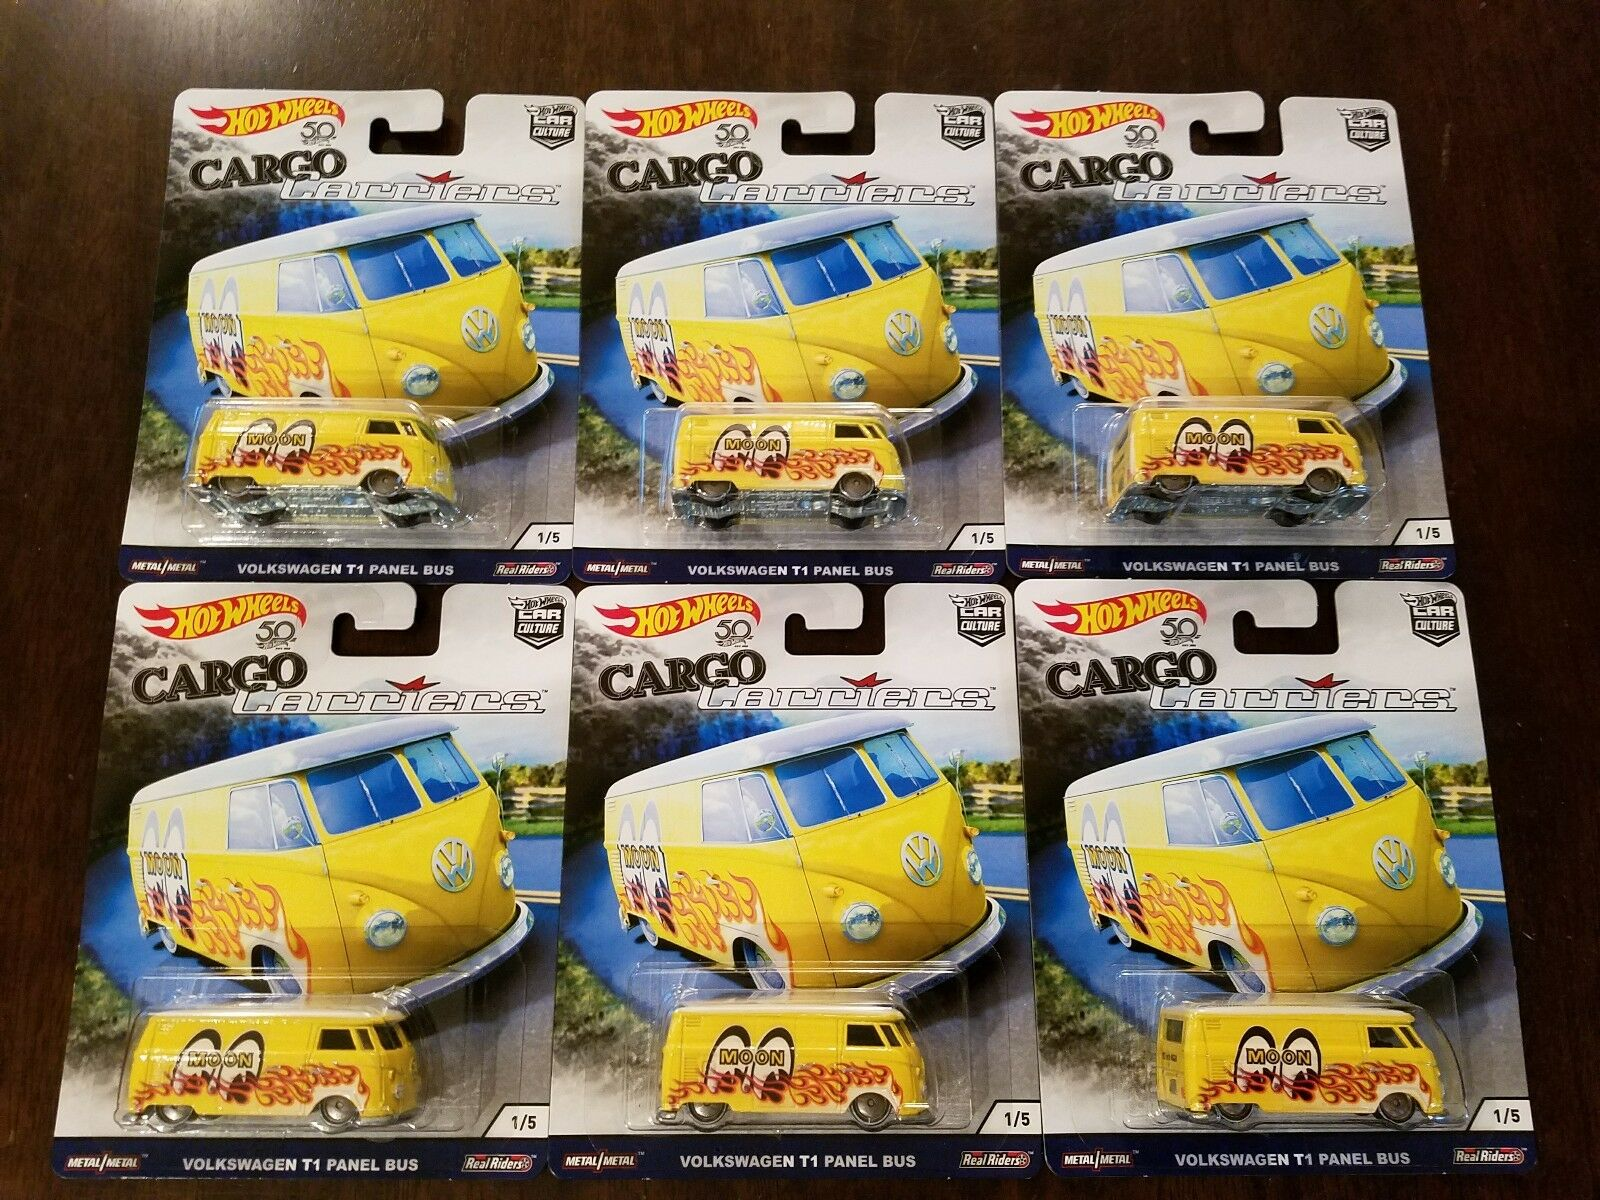 Hot Wheels 2018 Car Culture Cargo Carriers Volkswagen T1 Panel Bus (Lot of 6)